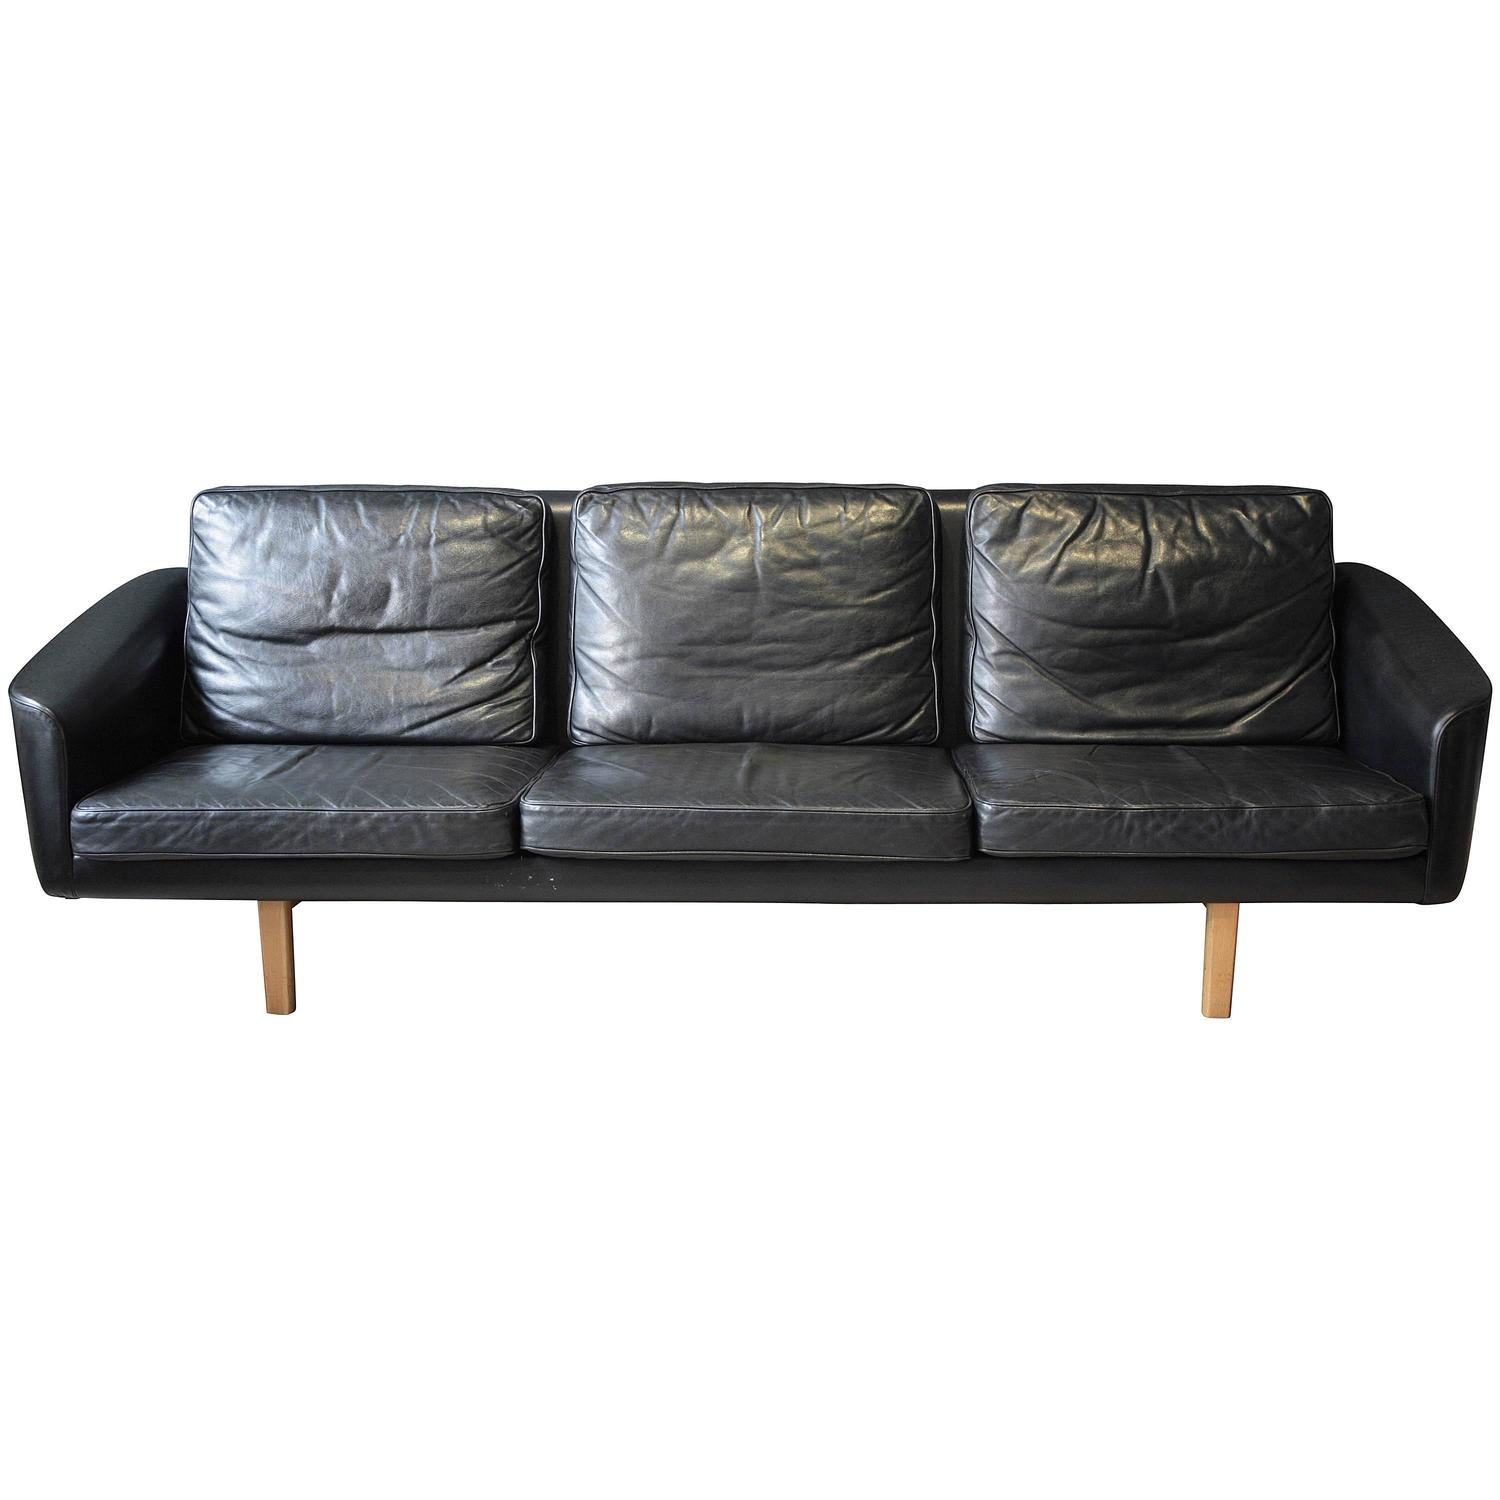 Swedish Three Seat Leather Sofa by Lennart Bender for Ulferts